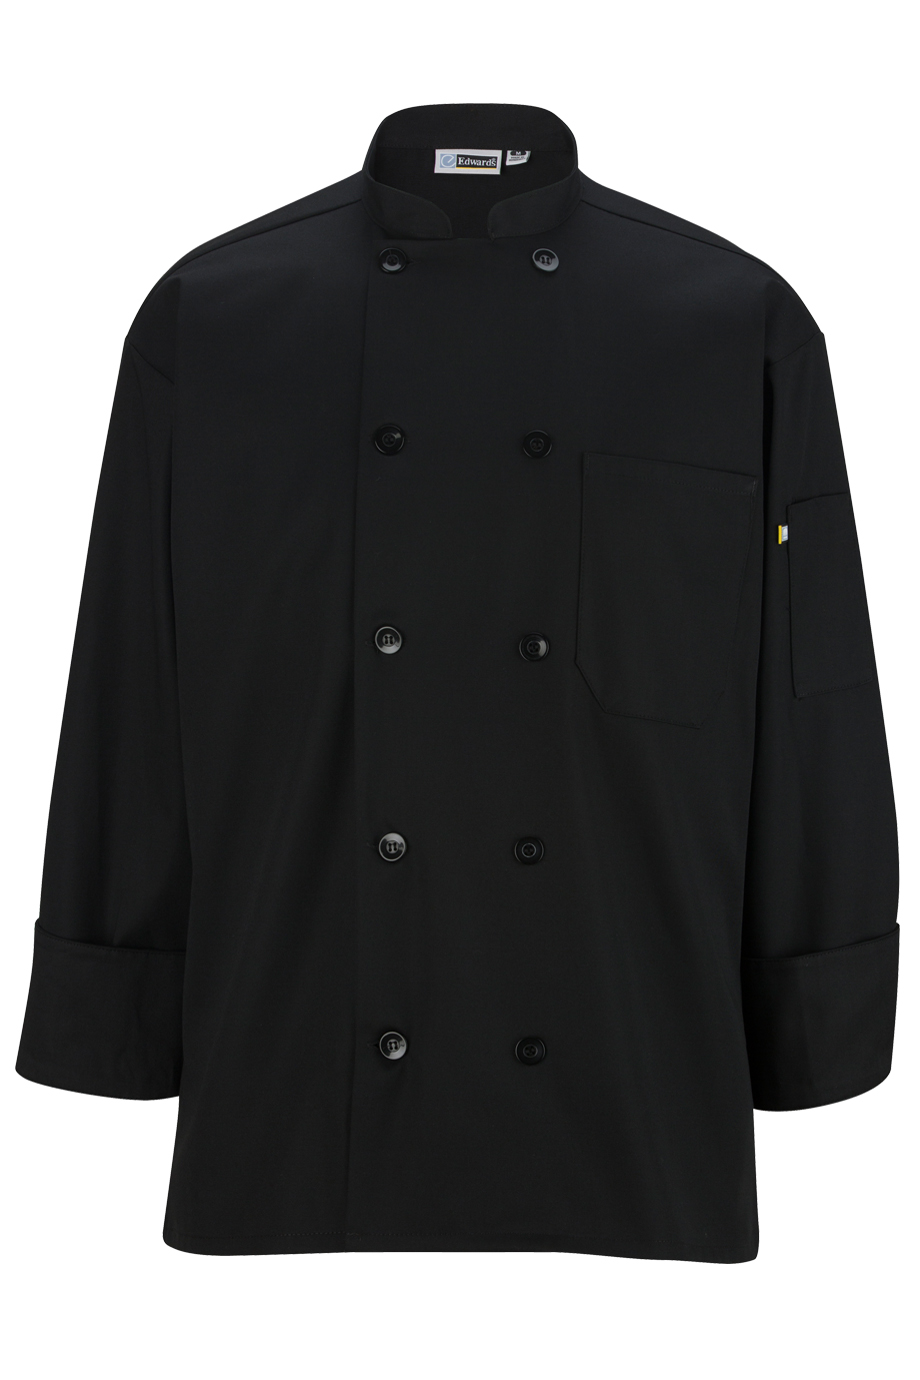 Black Long Sleeve Chef Coat-Edwards